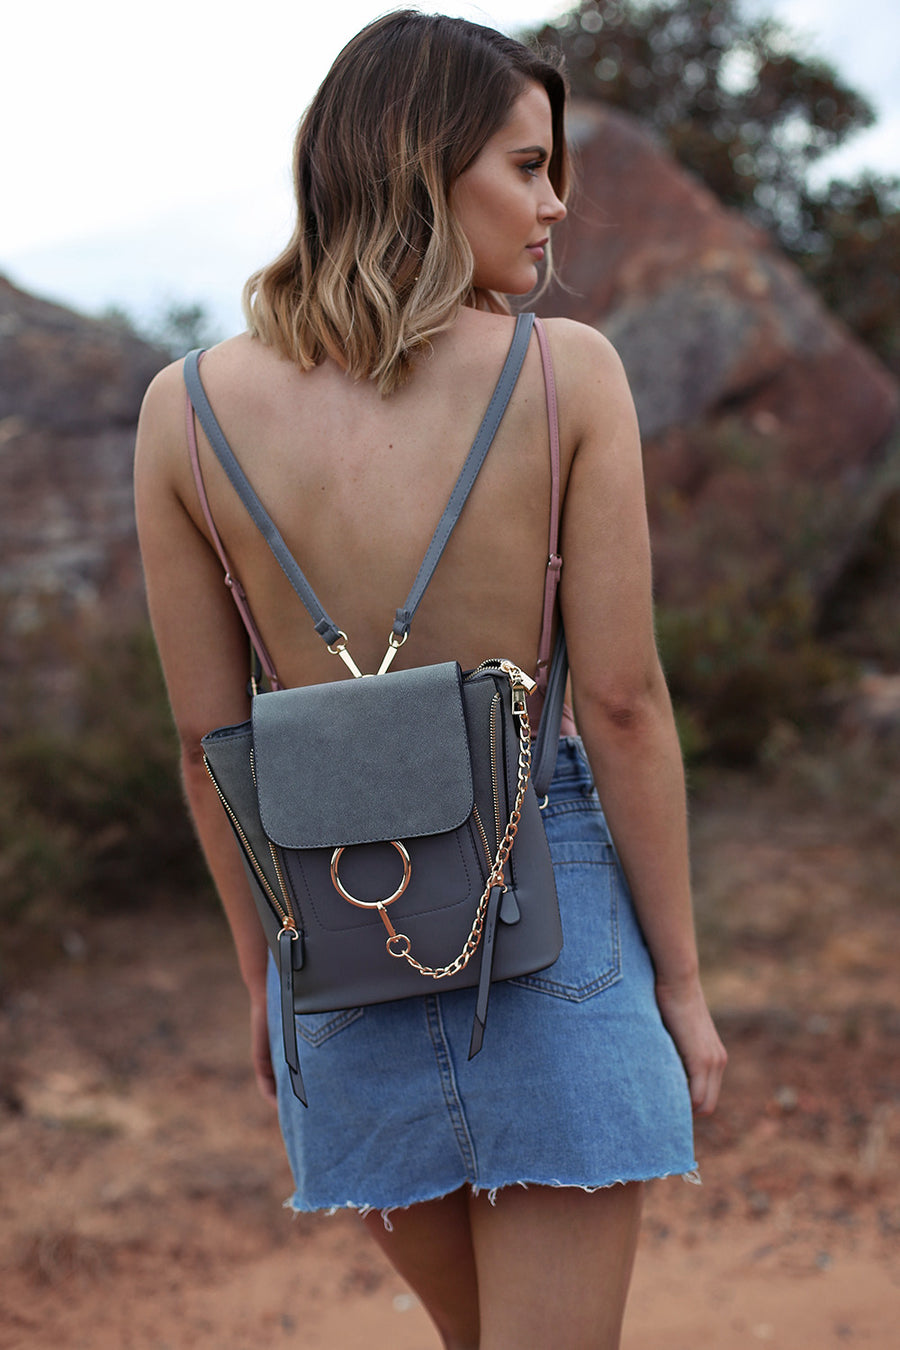 Alexa Chain Bag in Ash - HER Empire Fashion Boutique Terrigal & Online